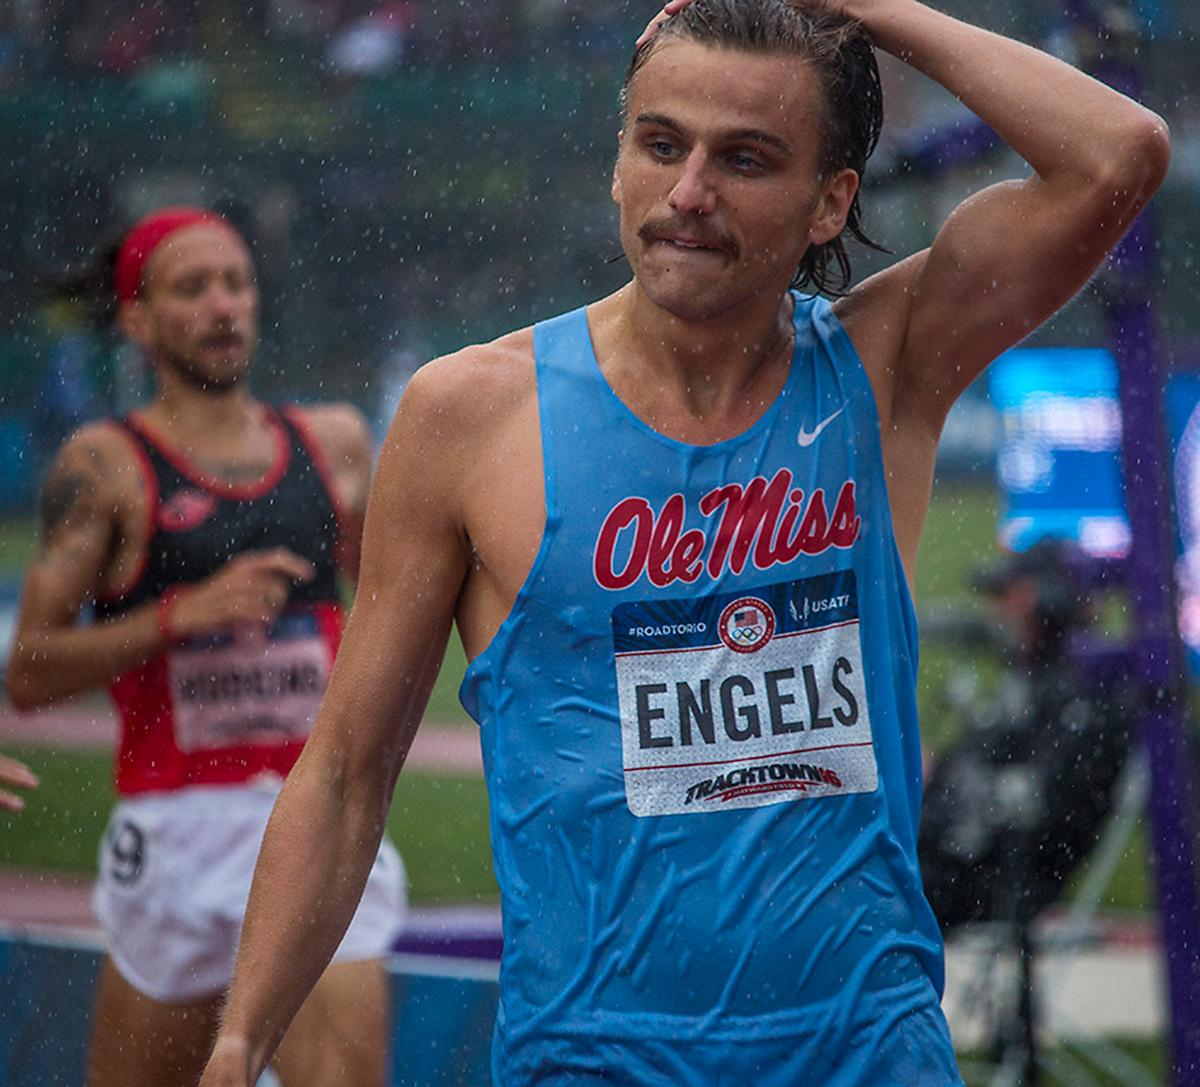 Ole Miss Rebel Craig Engels wipes the rain from his face as he crosses the finish line of the men�s 1,500 meter run semis. Day Eight of the U.S. Olympic Trials Track and Field continued on Friday at Hayward Field in Eugene, Ore. and will continue through July 10. Photo by Katie Pietzold